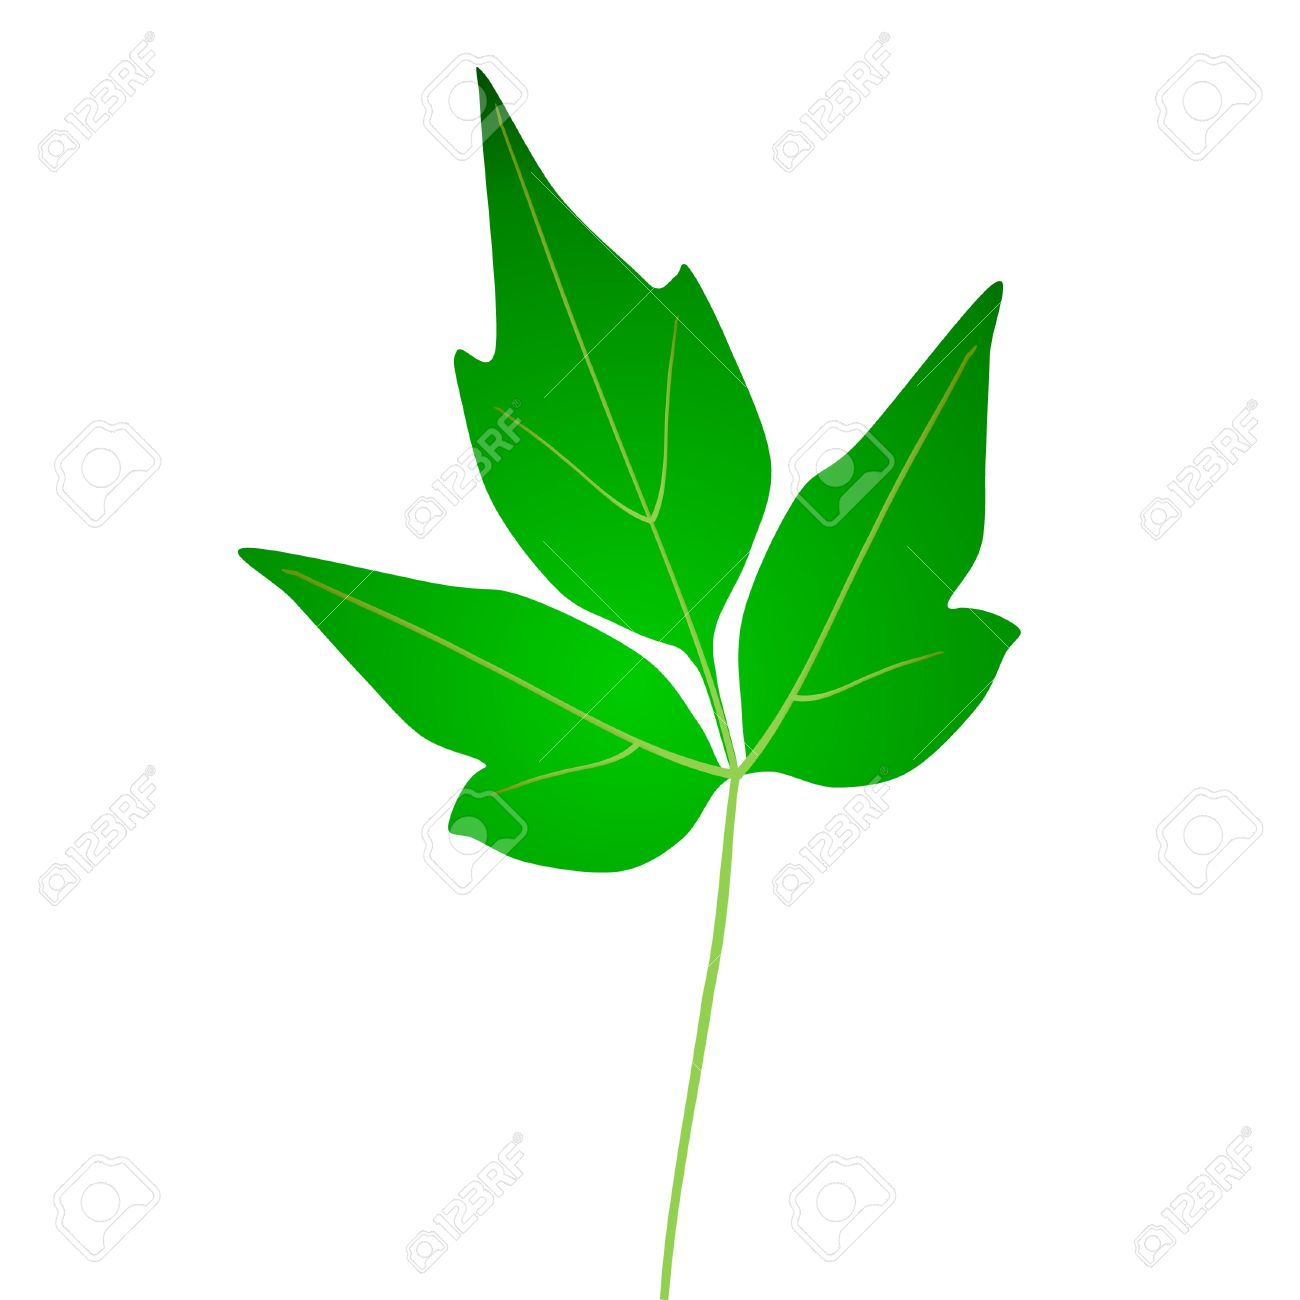 Green ivy leaves clipart.